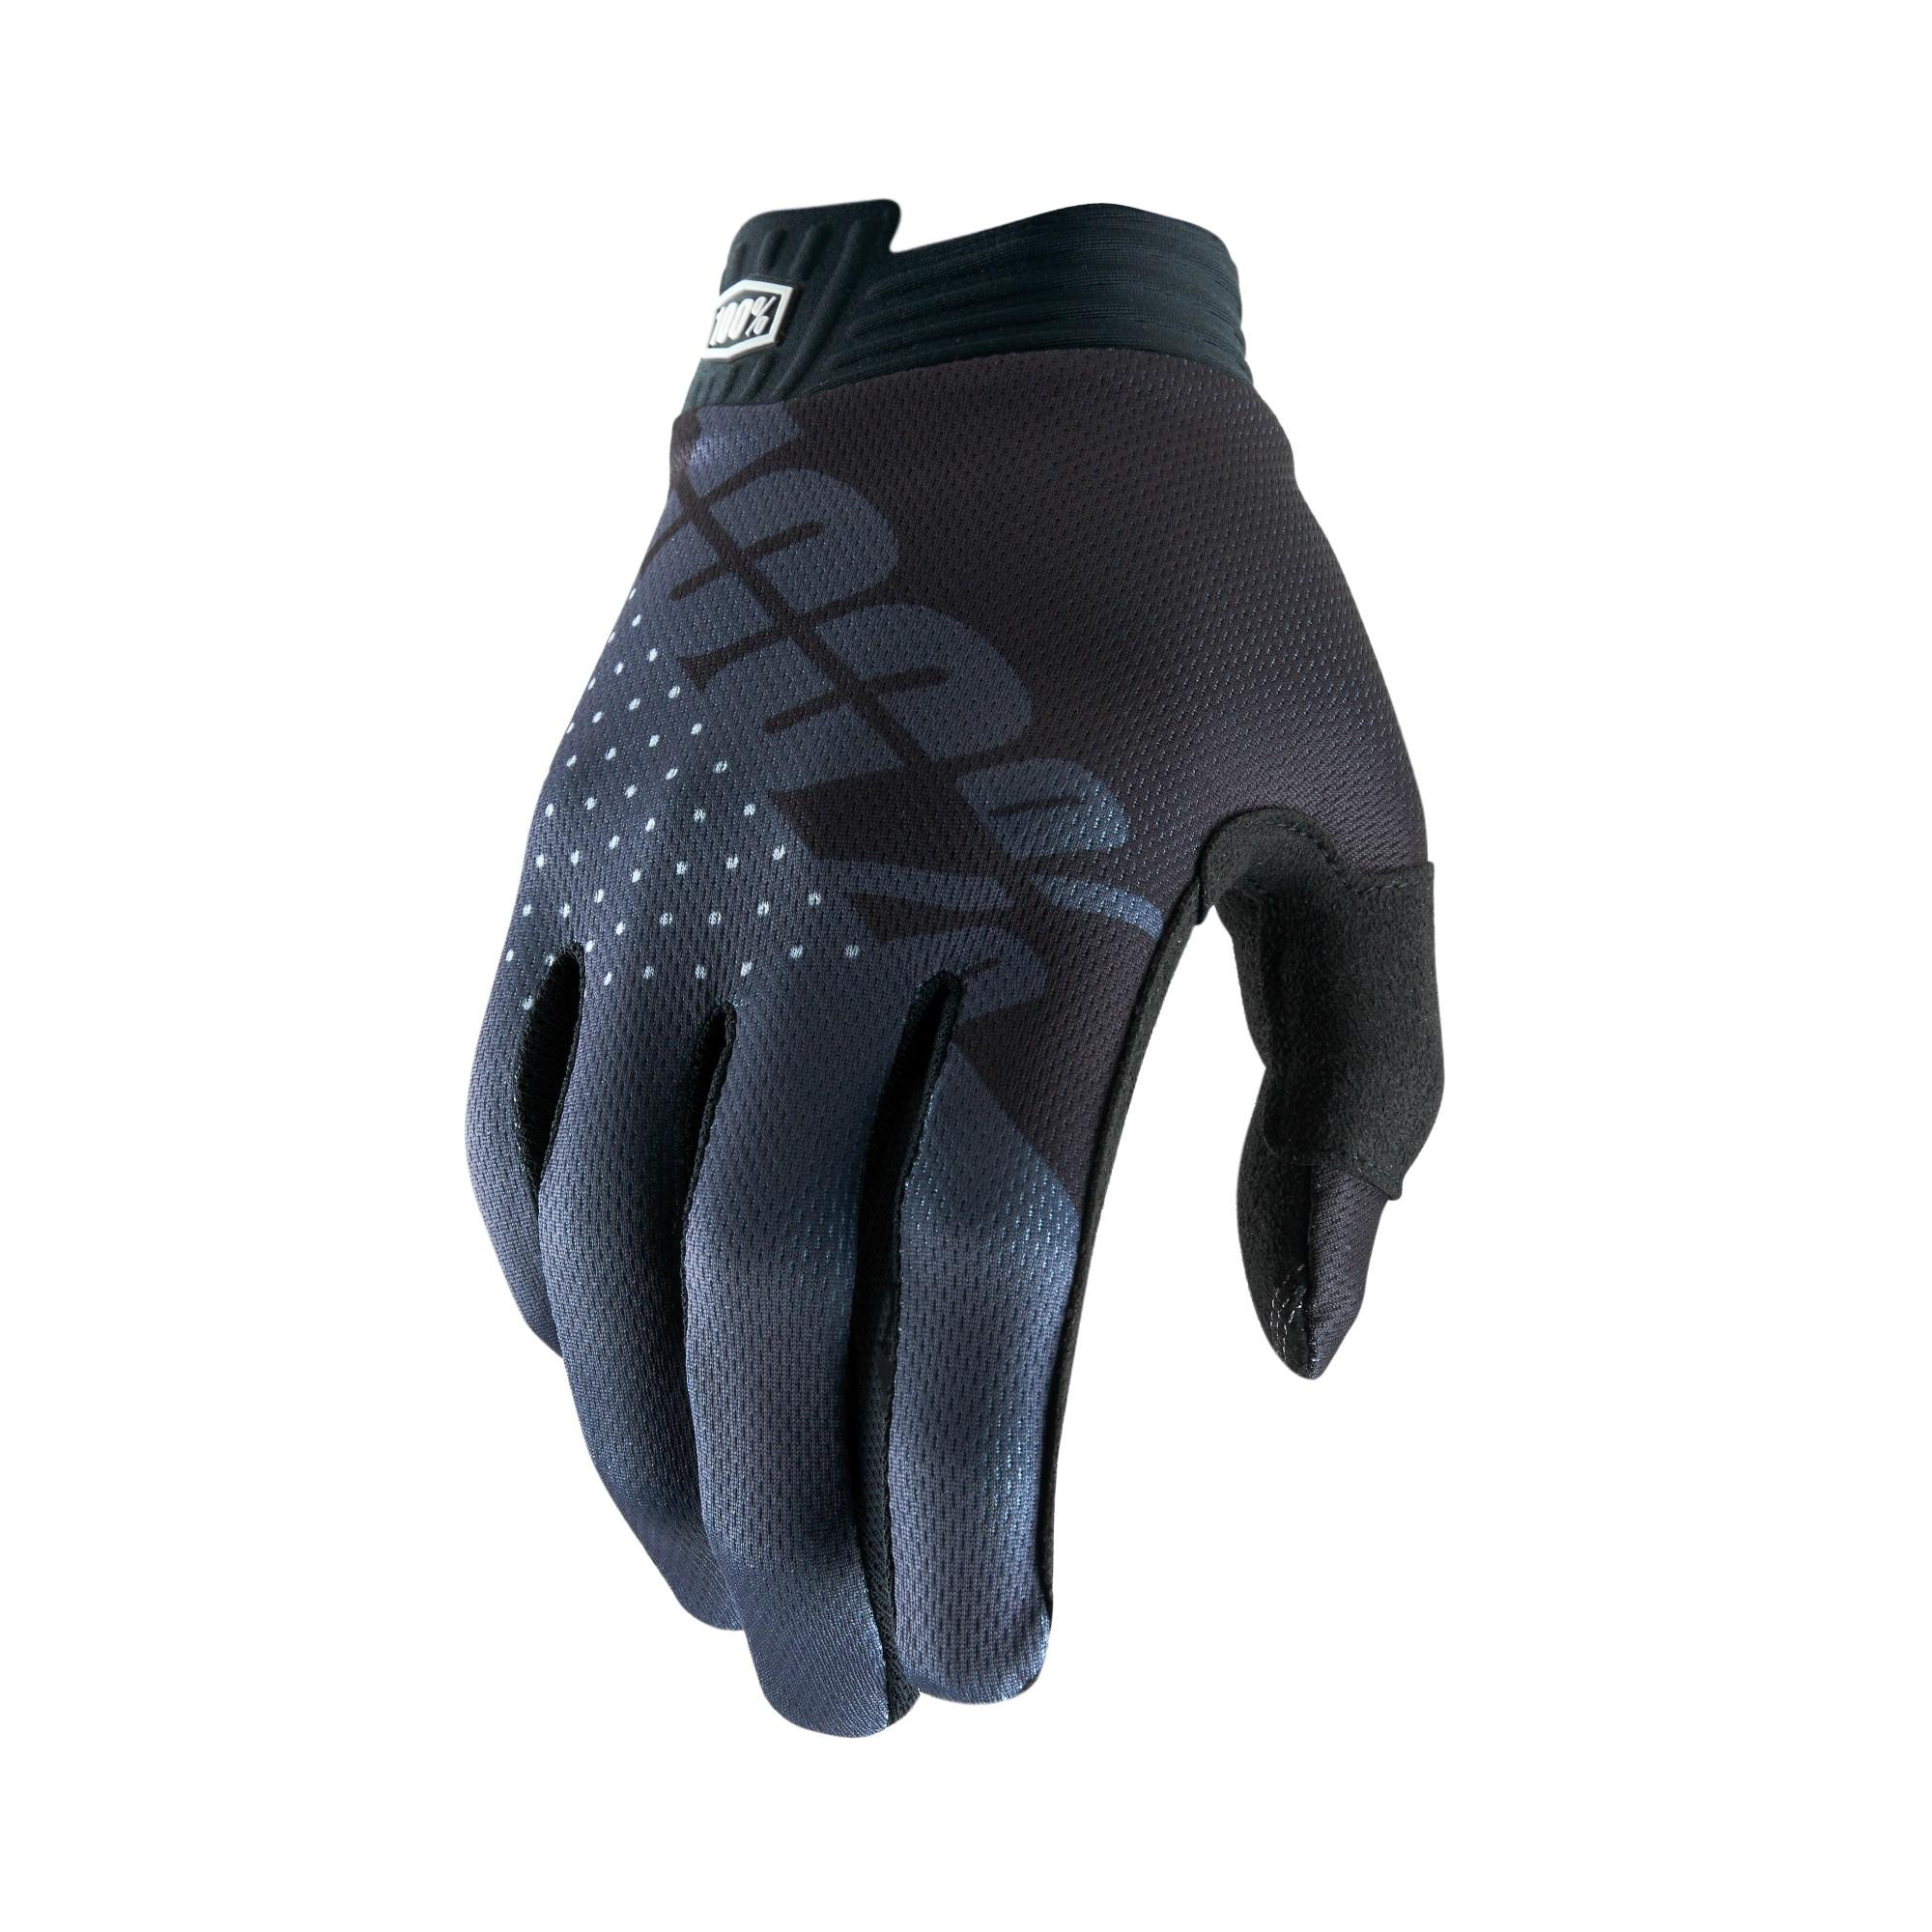 iTRACK 100% Glove Black/Charcoal